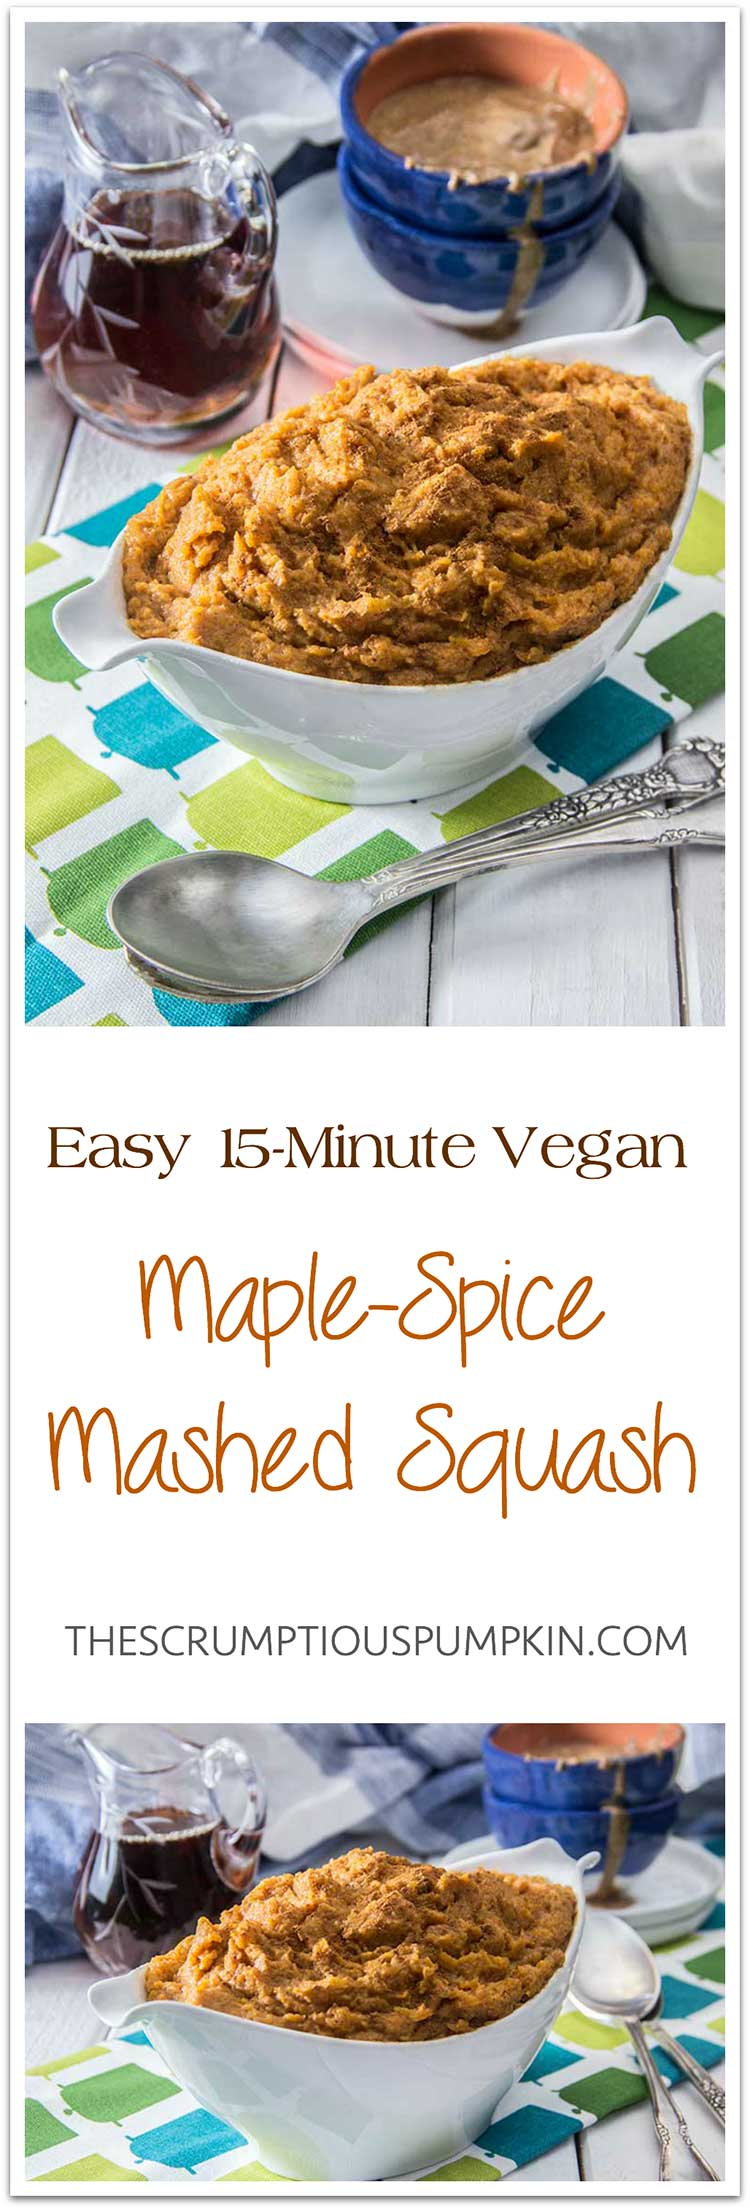 Easy-15-Minute-Vegan-Maple-Spice-Mashed-Squash